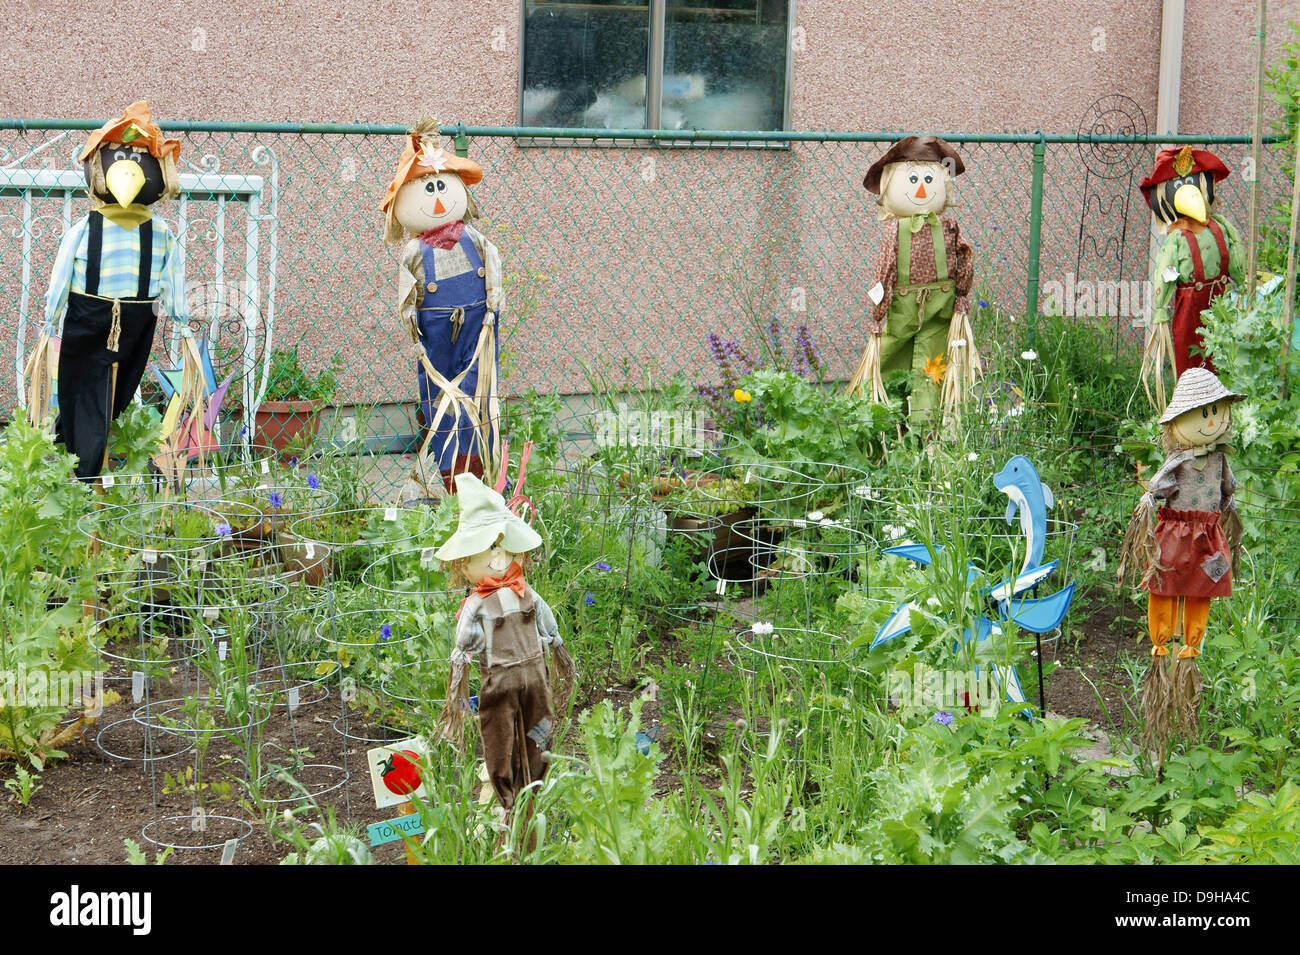 scarecrows-in-a-backyard-vegetable-garden-vancouver-bc-canada-D9HA4C.jpg